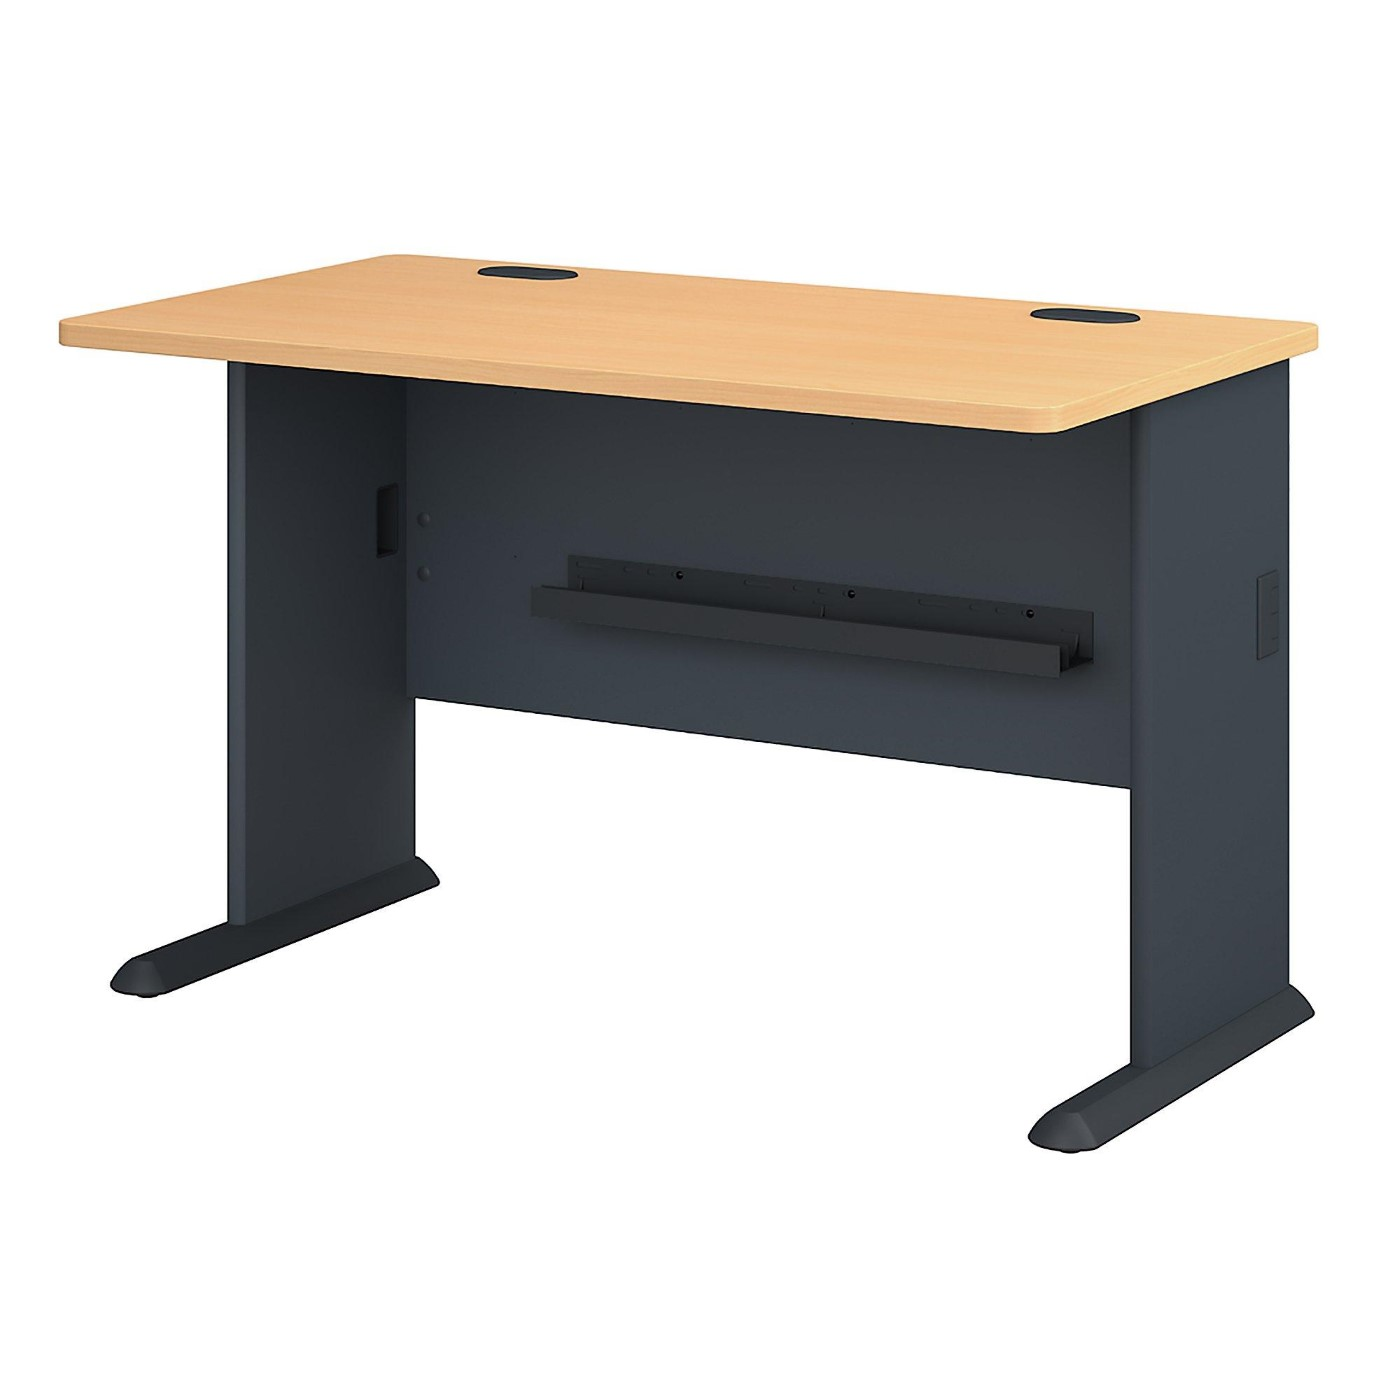 BUSH BUSINESS FURNITURE SERIES A 48W DESK. FREE SHIPPING.  SALE DEDUCT 10% MORE ENTER '10percent' IN COUPON CODE BOX WHILE CHECKING OUT.